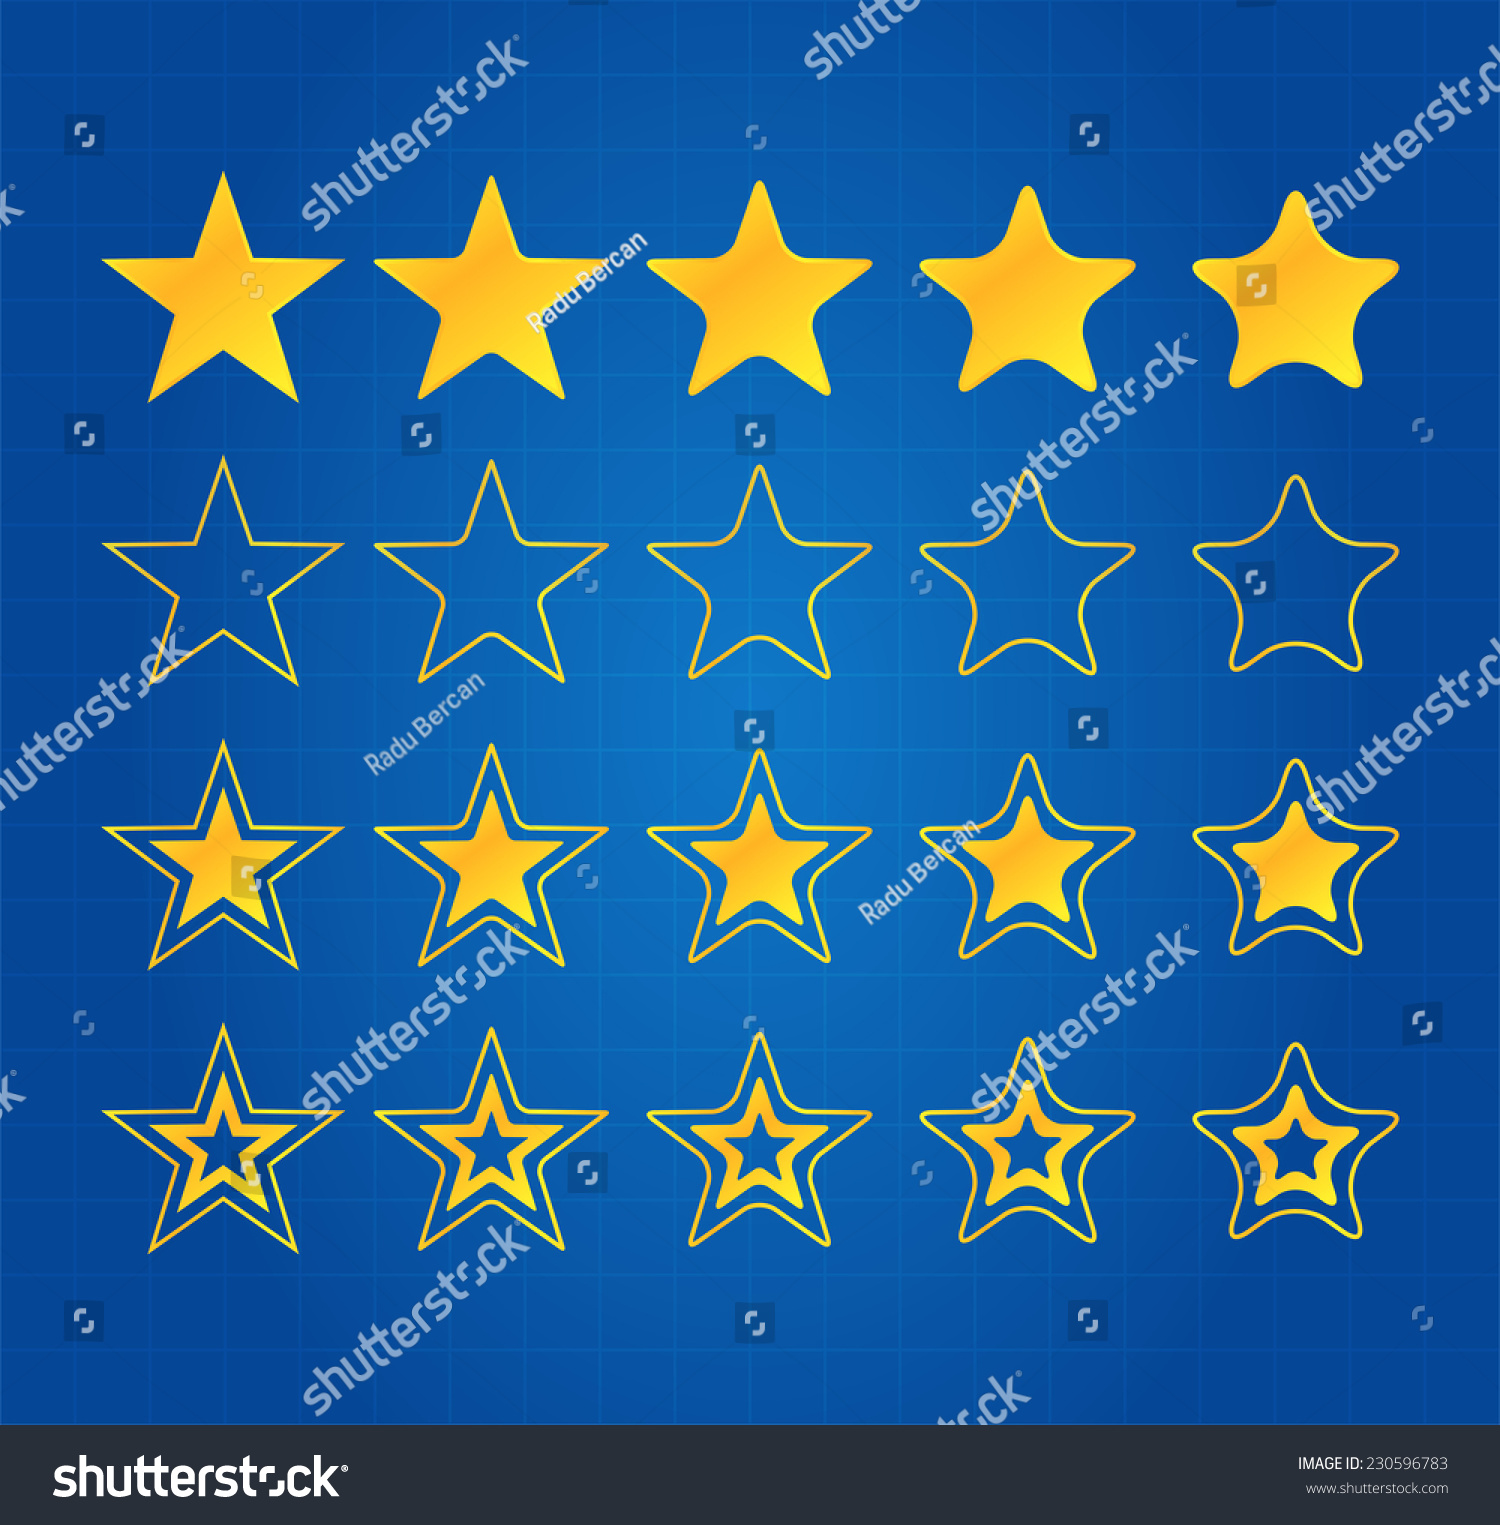 Five star quality award icons on stock vector 230596783 shutterstock five star quality award icons on blueprint malvernweather Gallery